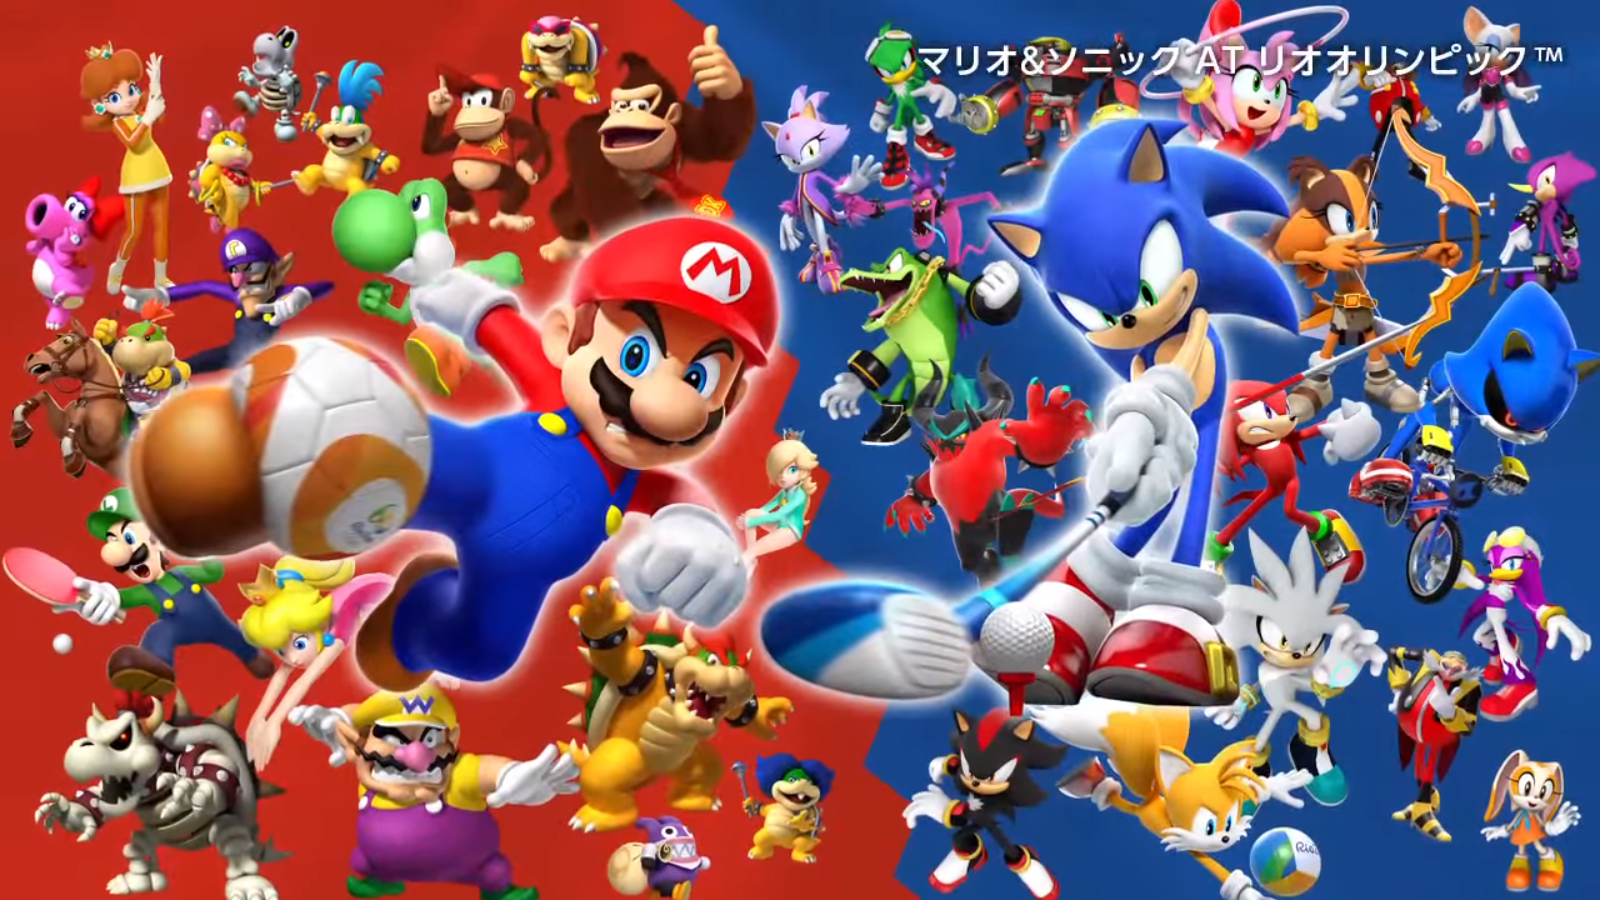 Rio 2016 Character Roster | Sonic the Hedgehog | Know Your